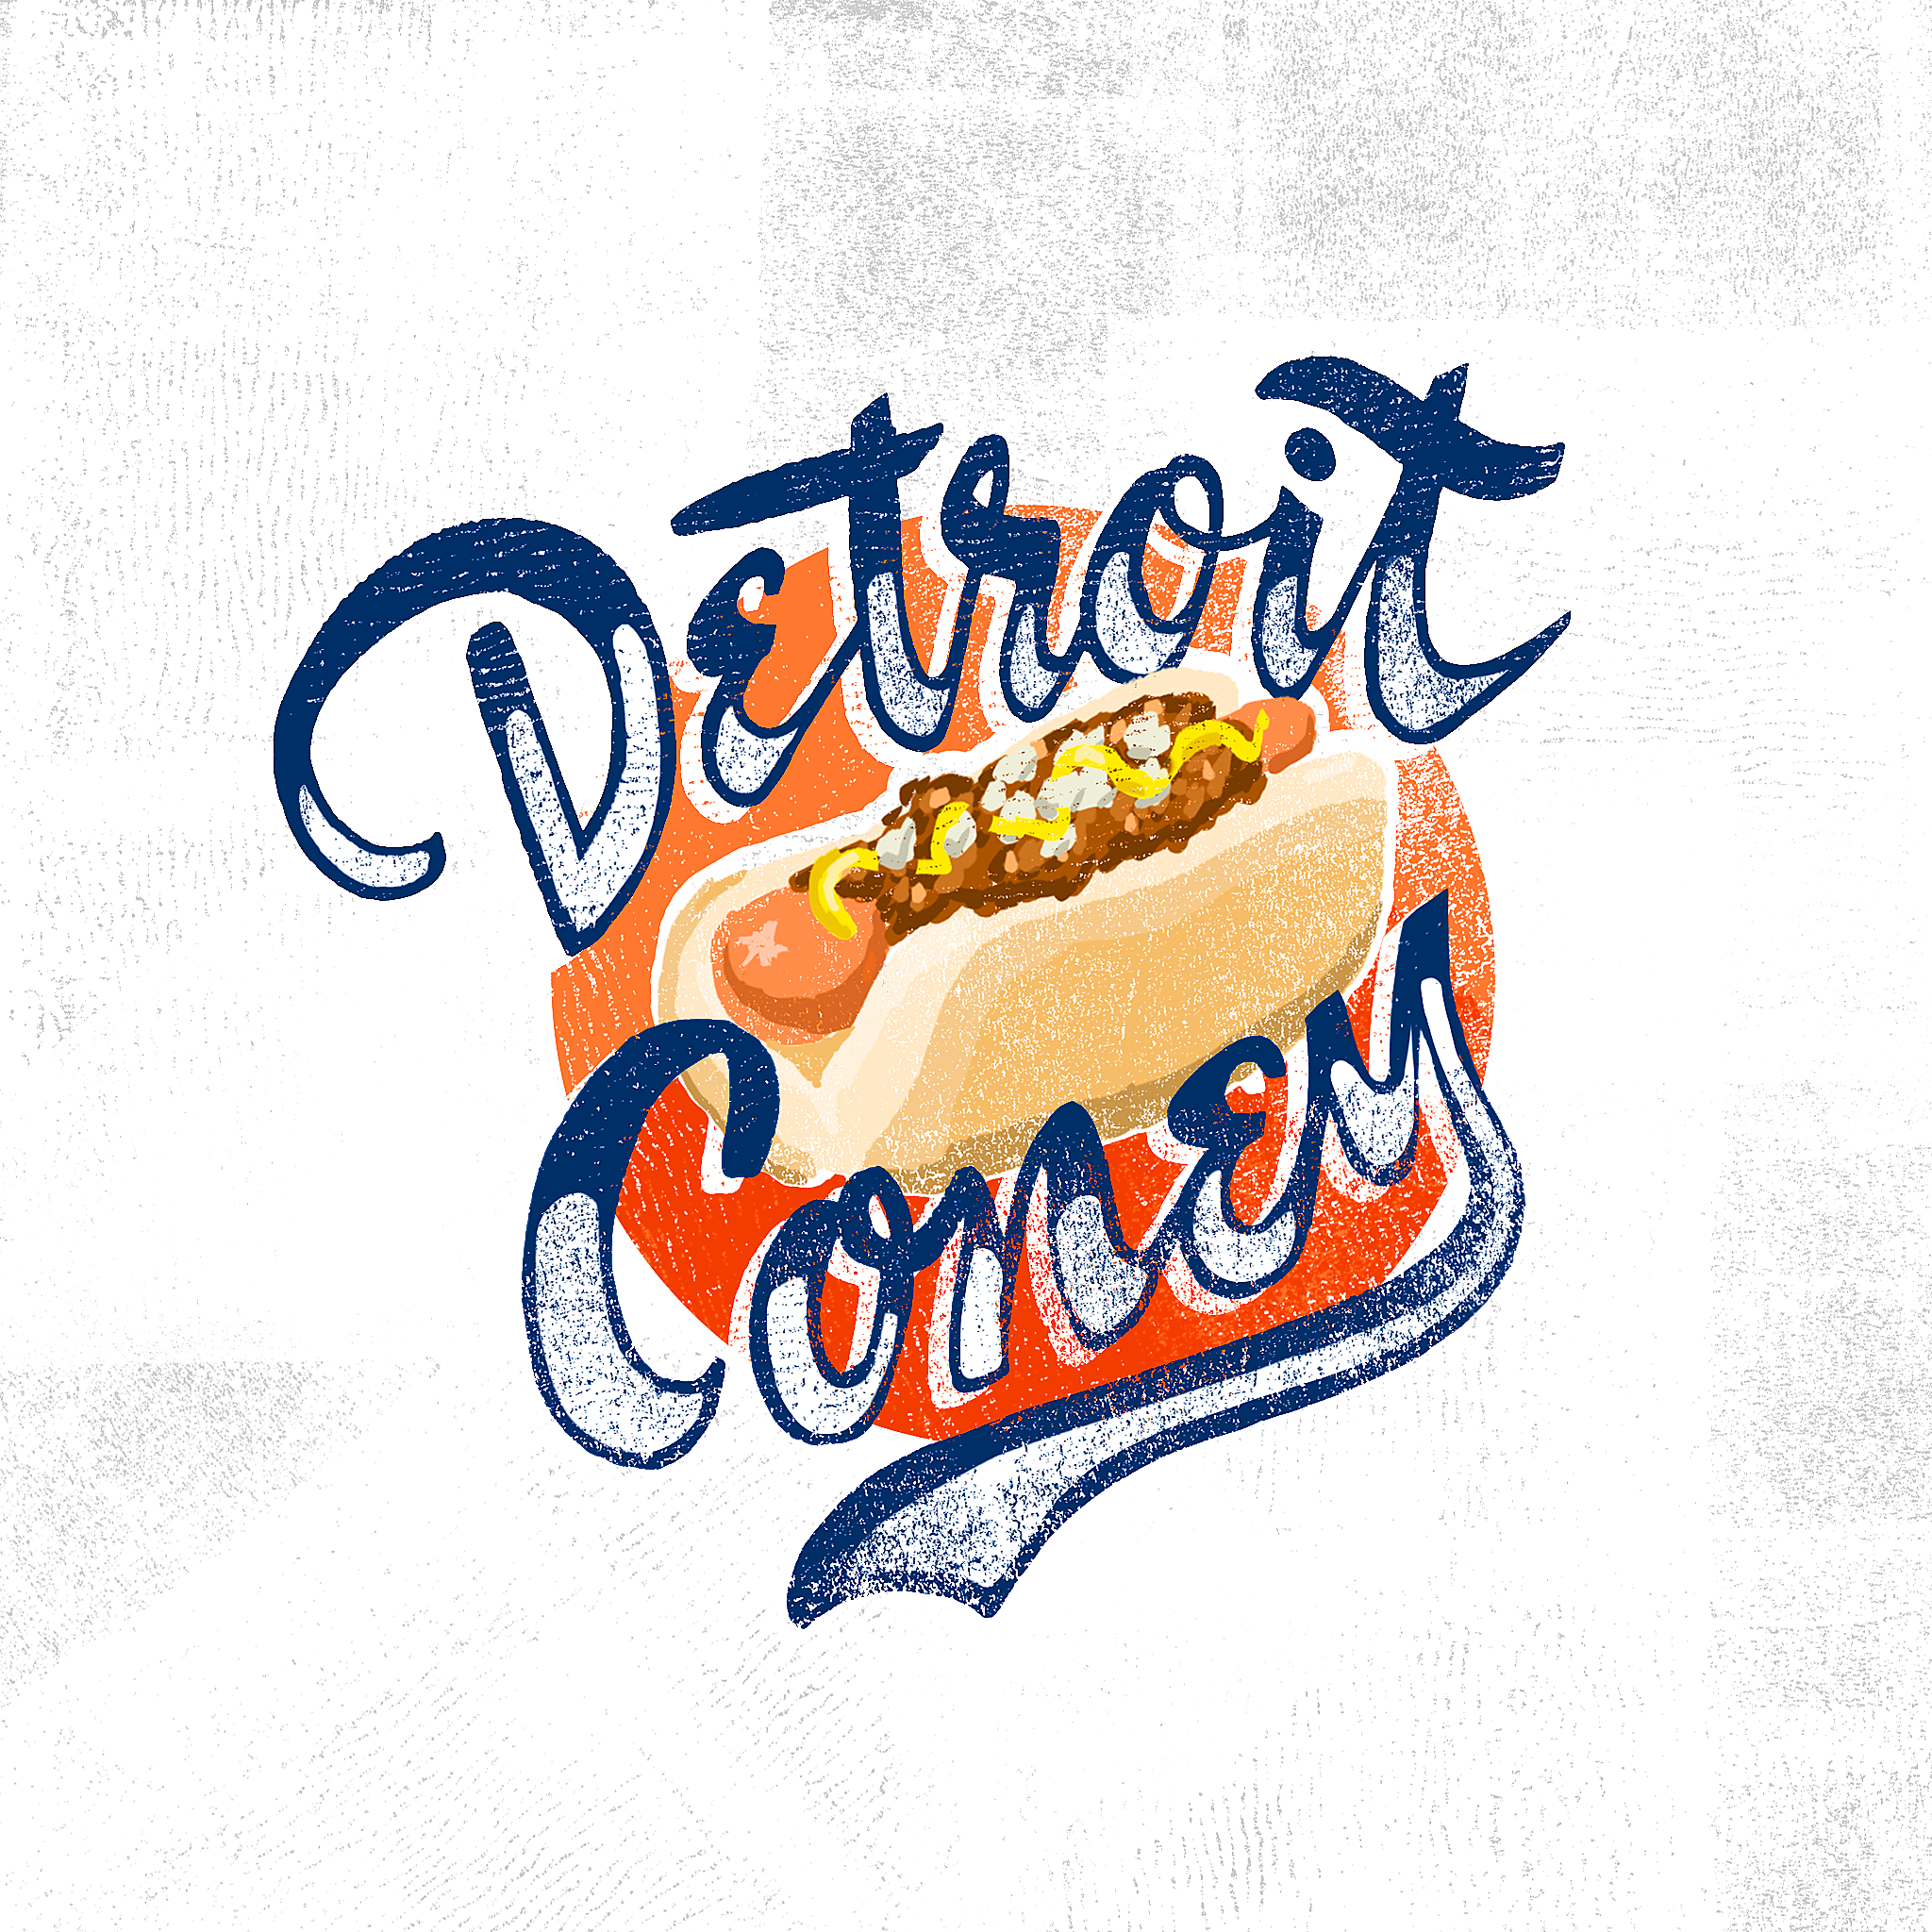 DetroitConey.png